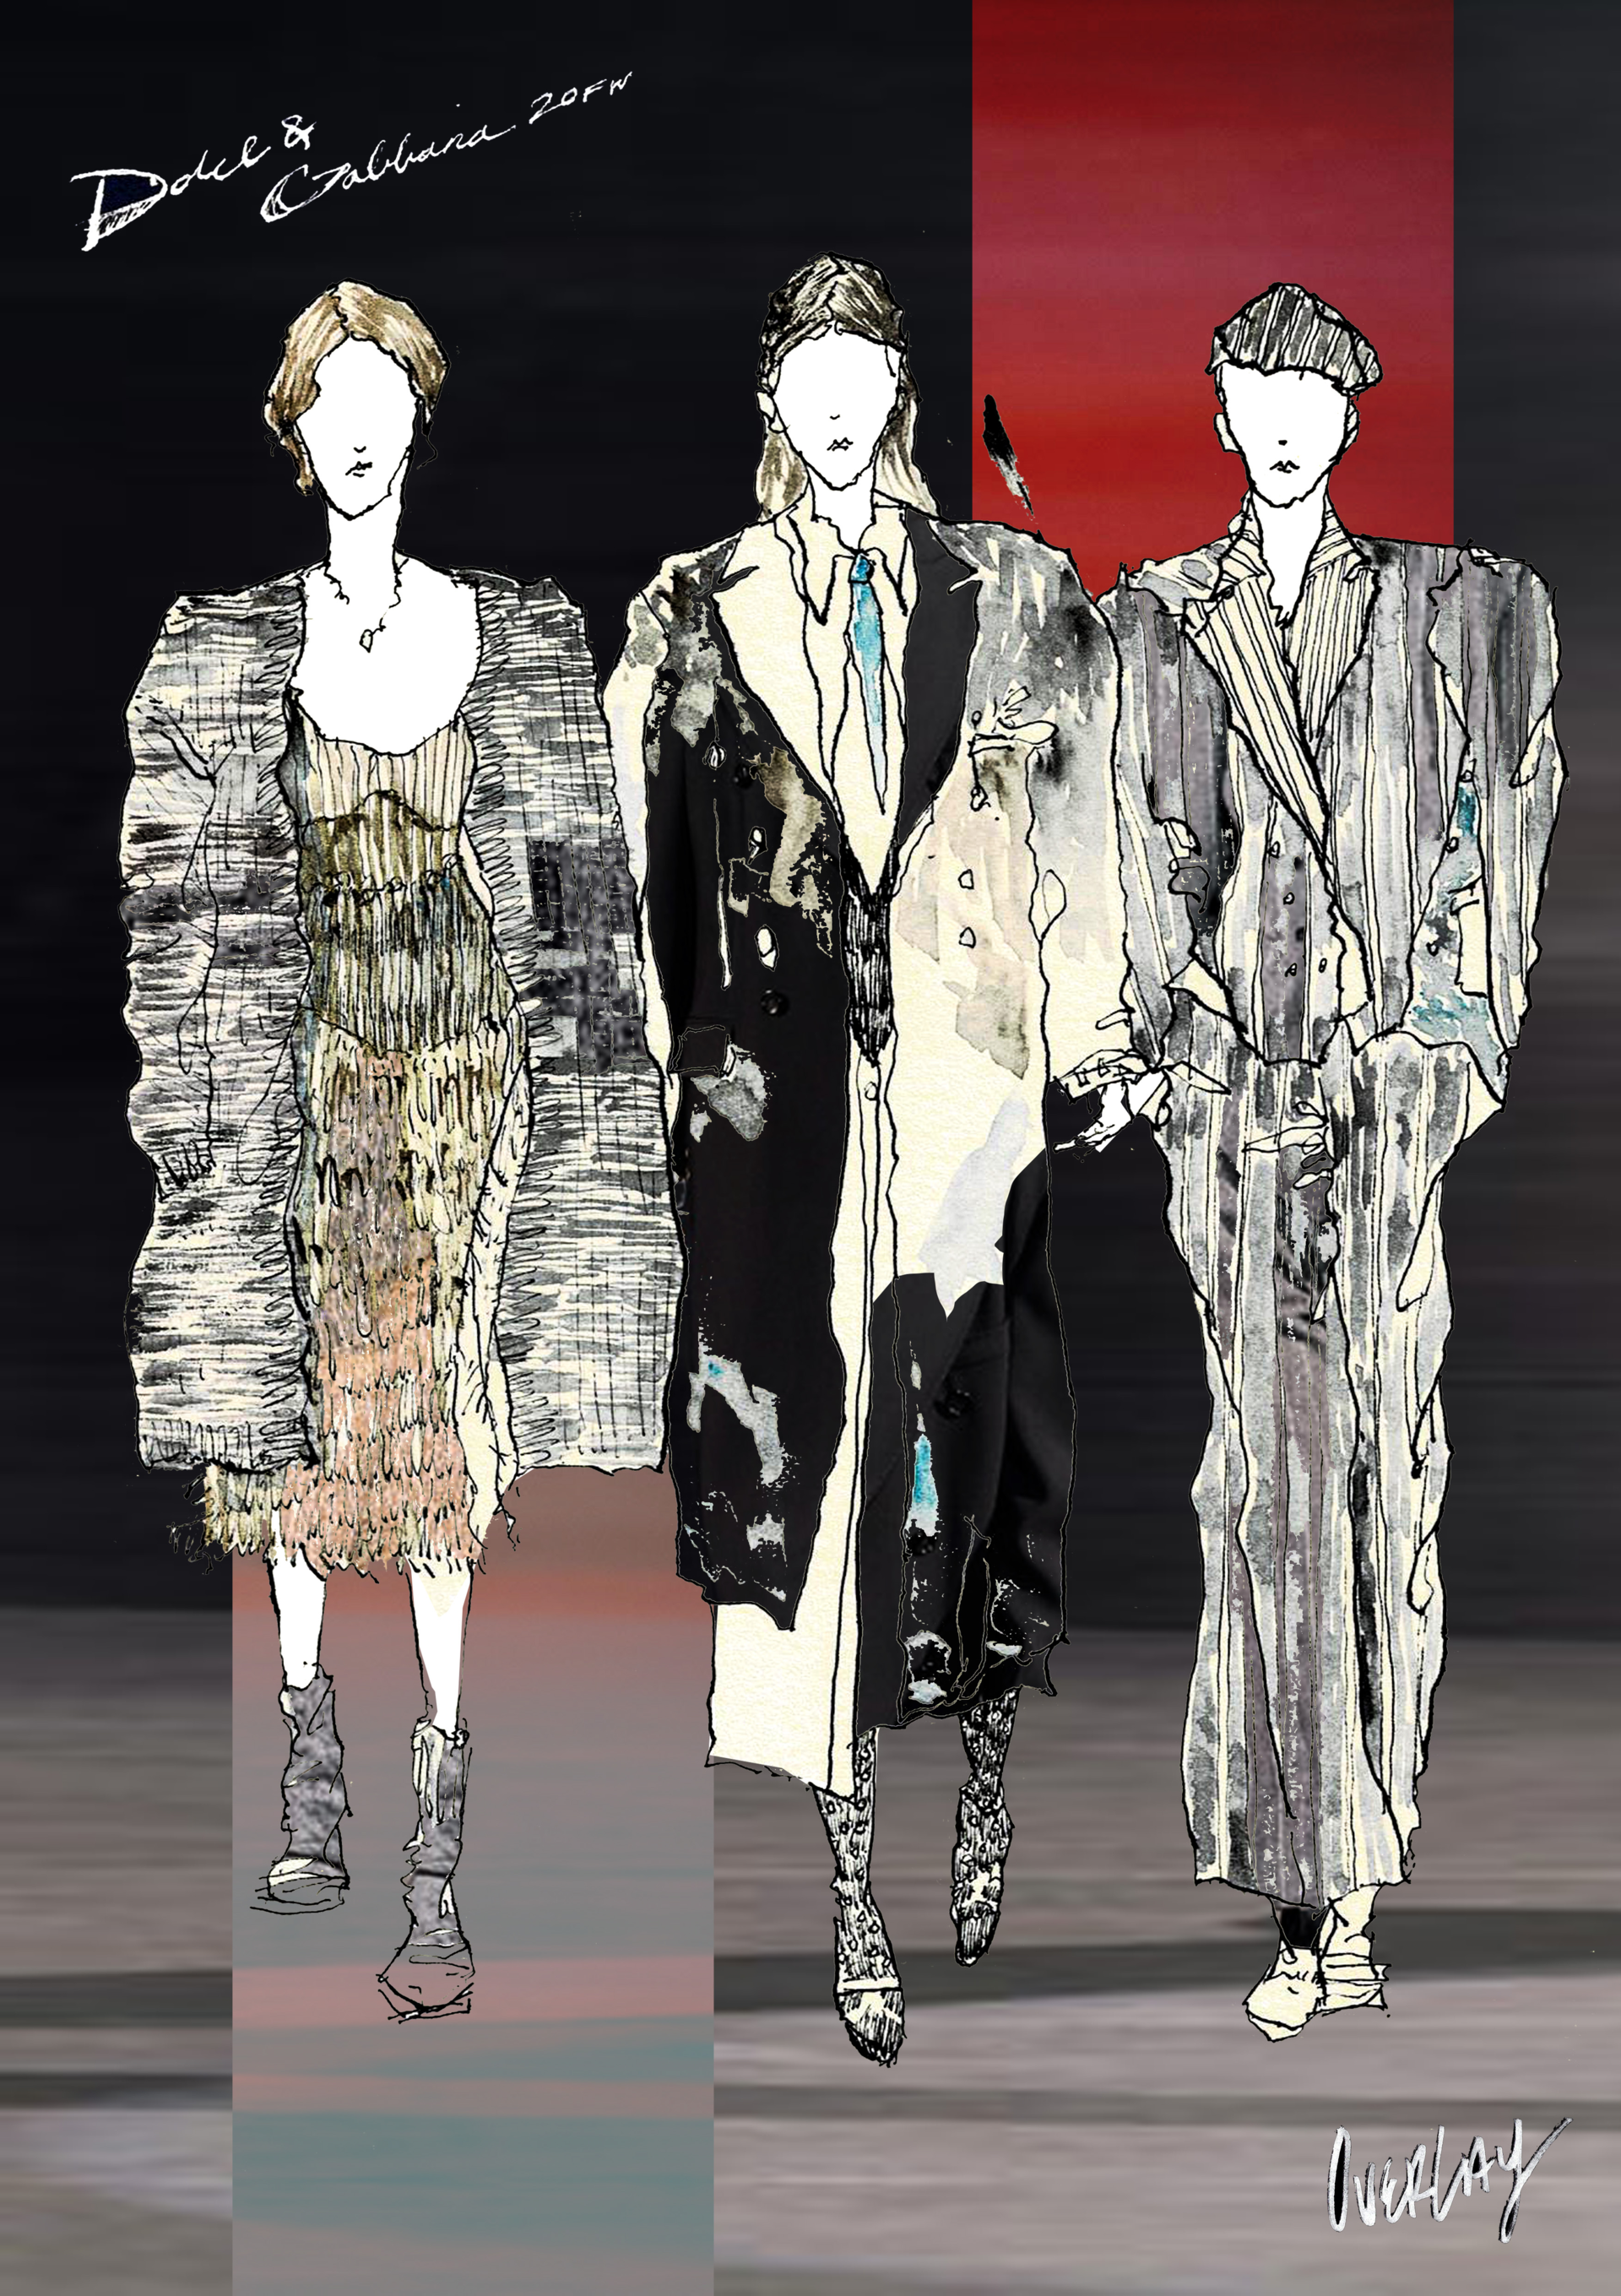 """""""UNTITLED"""" / 594mm x 841mm / ink . watercolor. digital collage / 2020 runway collection revisited"""